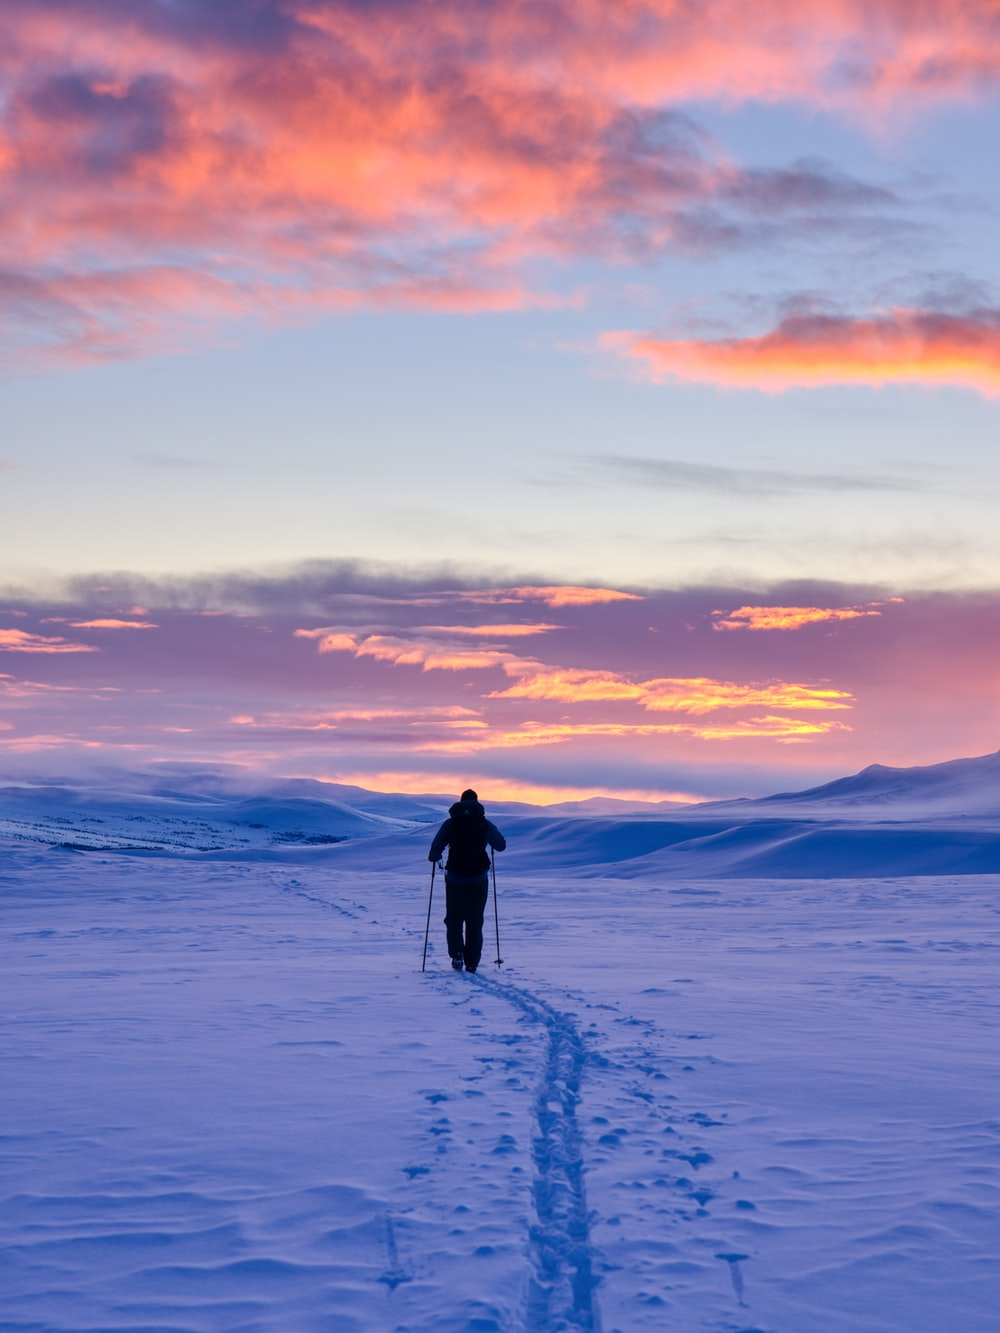 man in black jacket walking on snow covered ground during sunset